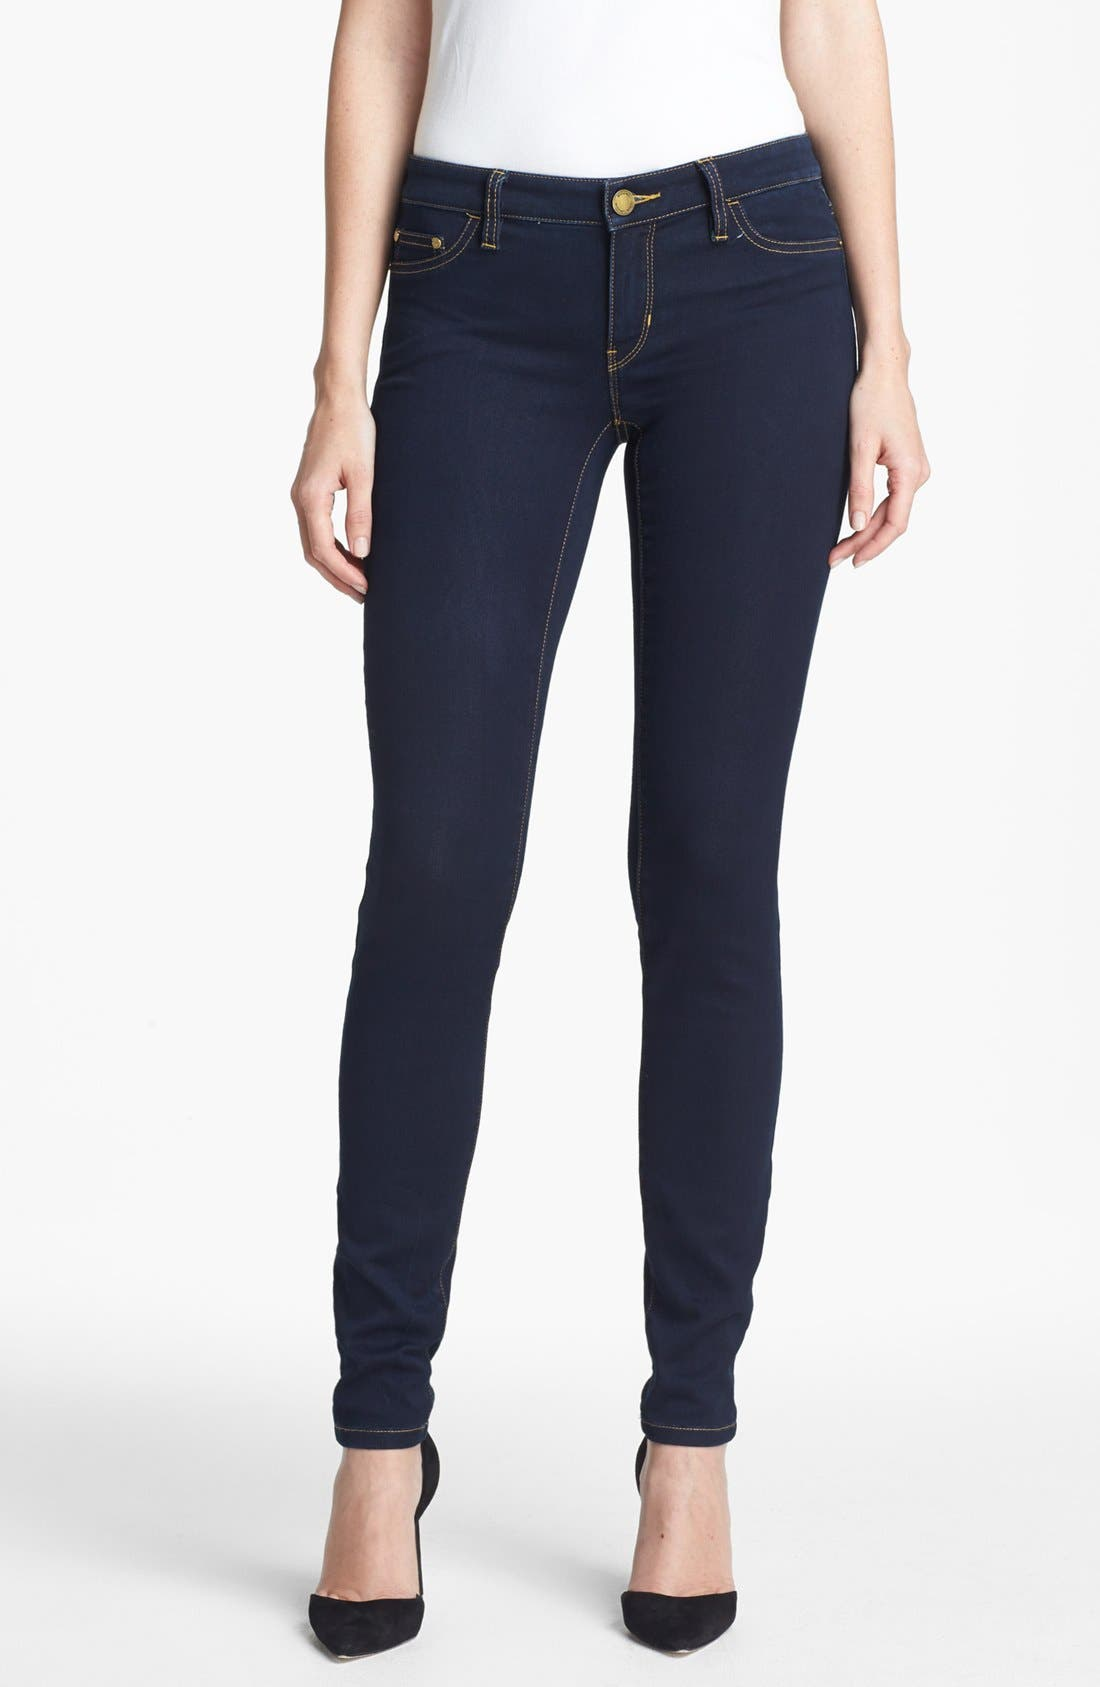 Alternate Image 1 Selected - MICHAEL Michael Kors Stretch Skinny Jeans (Twilight)